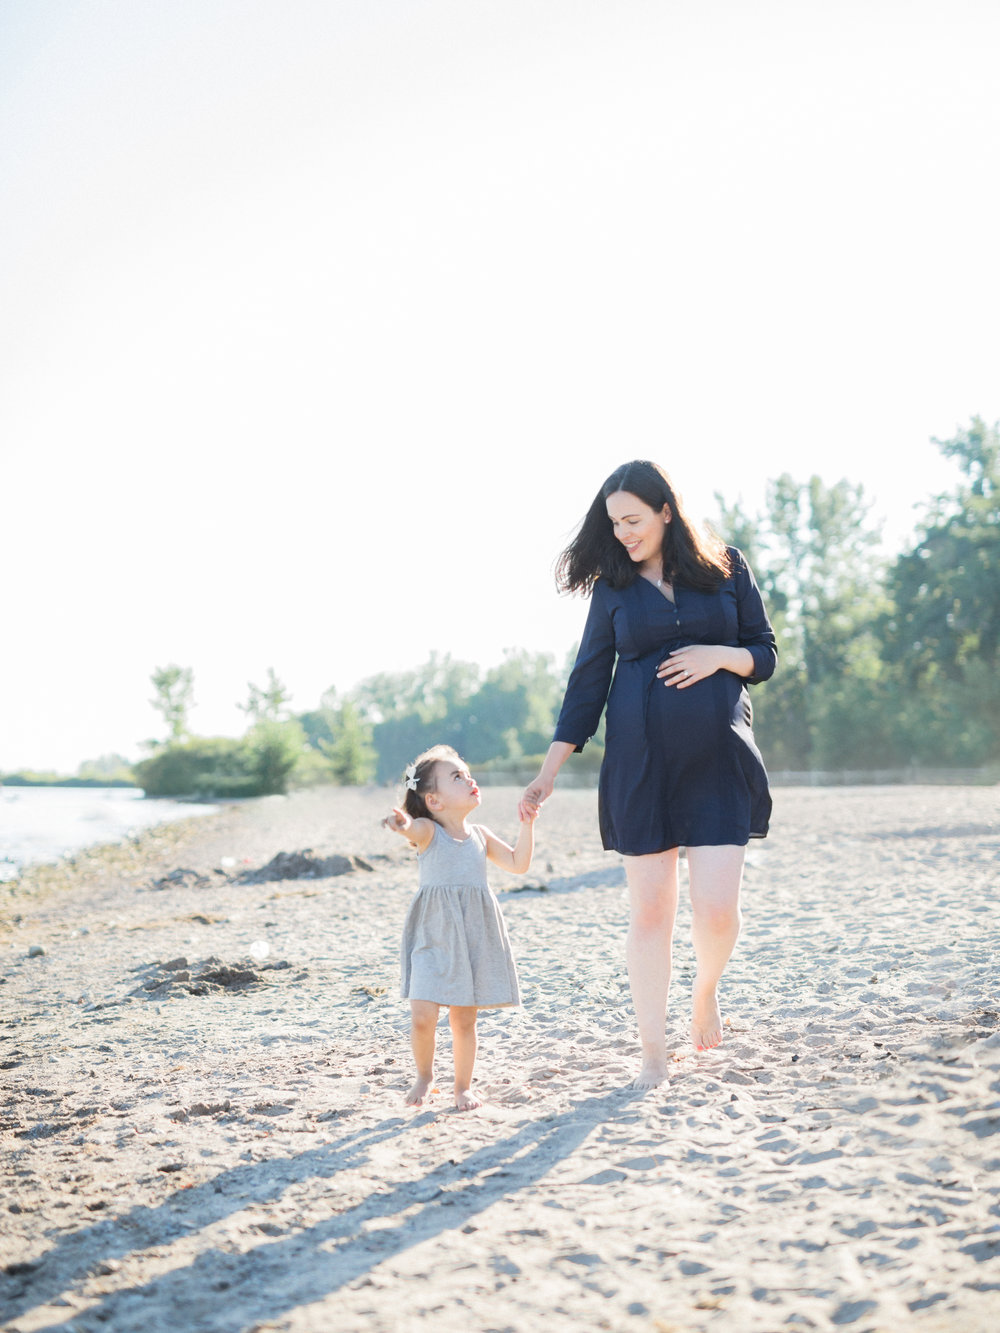 Elza Photographie - Toronto maternity photographer - Film and digital - Bright and airy - Mastin Labs - Motherhood